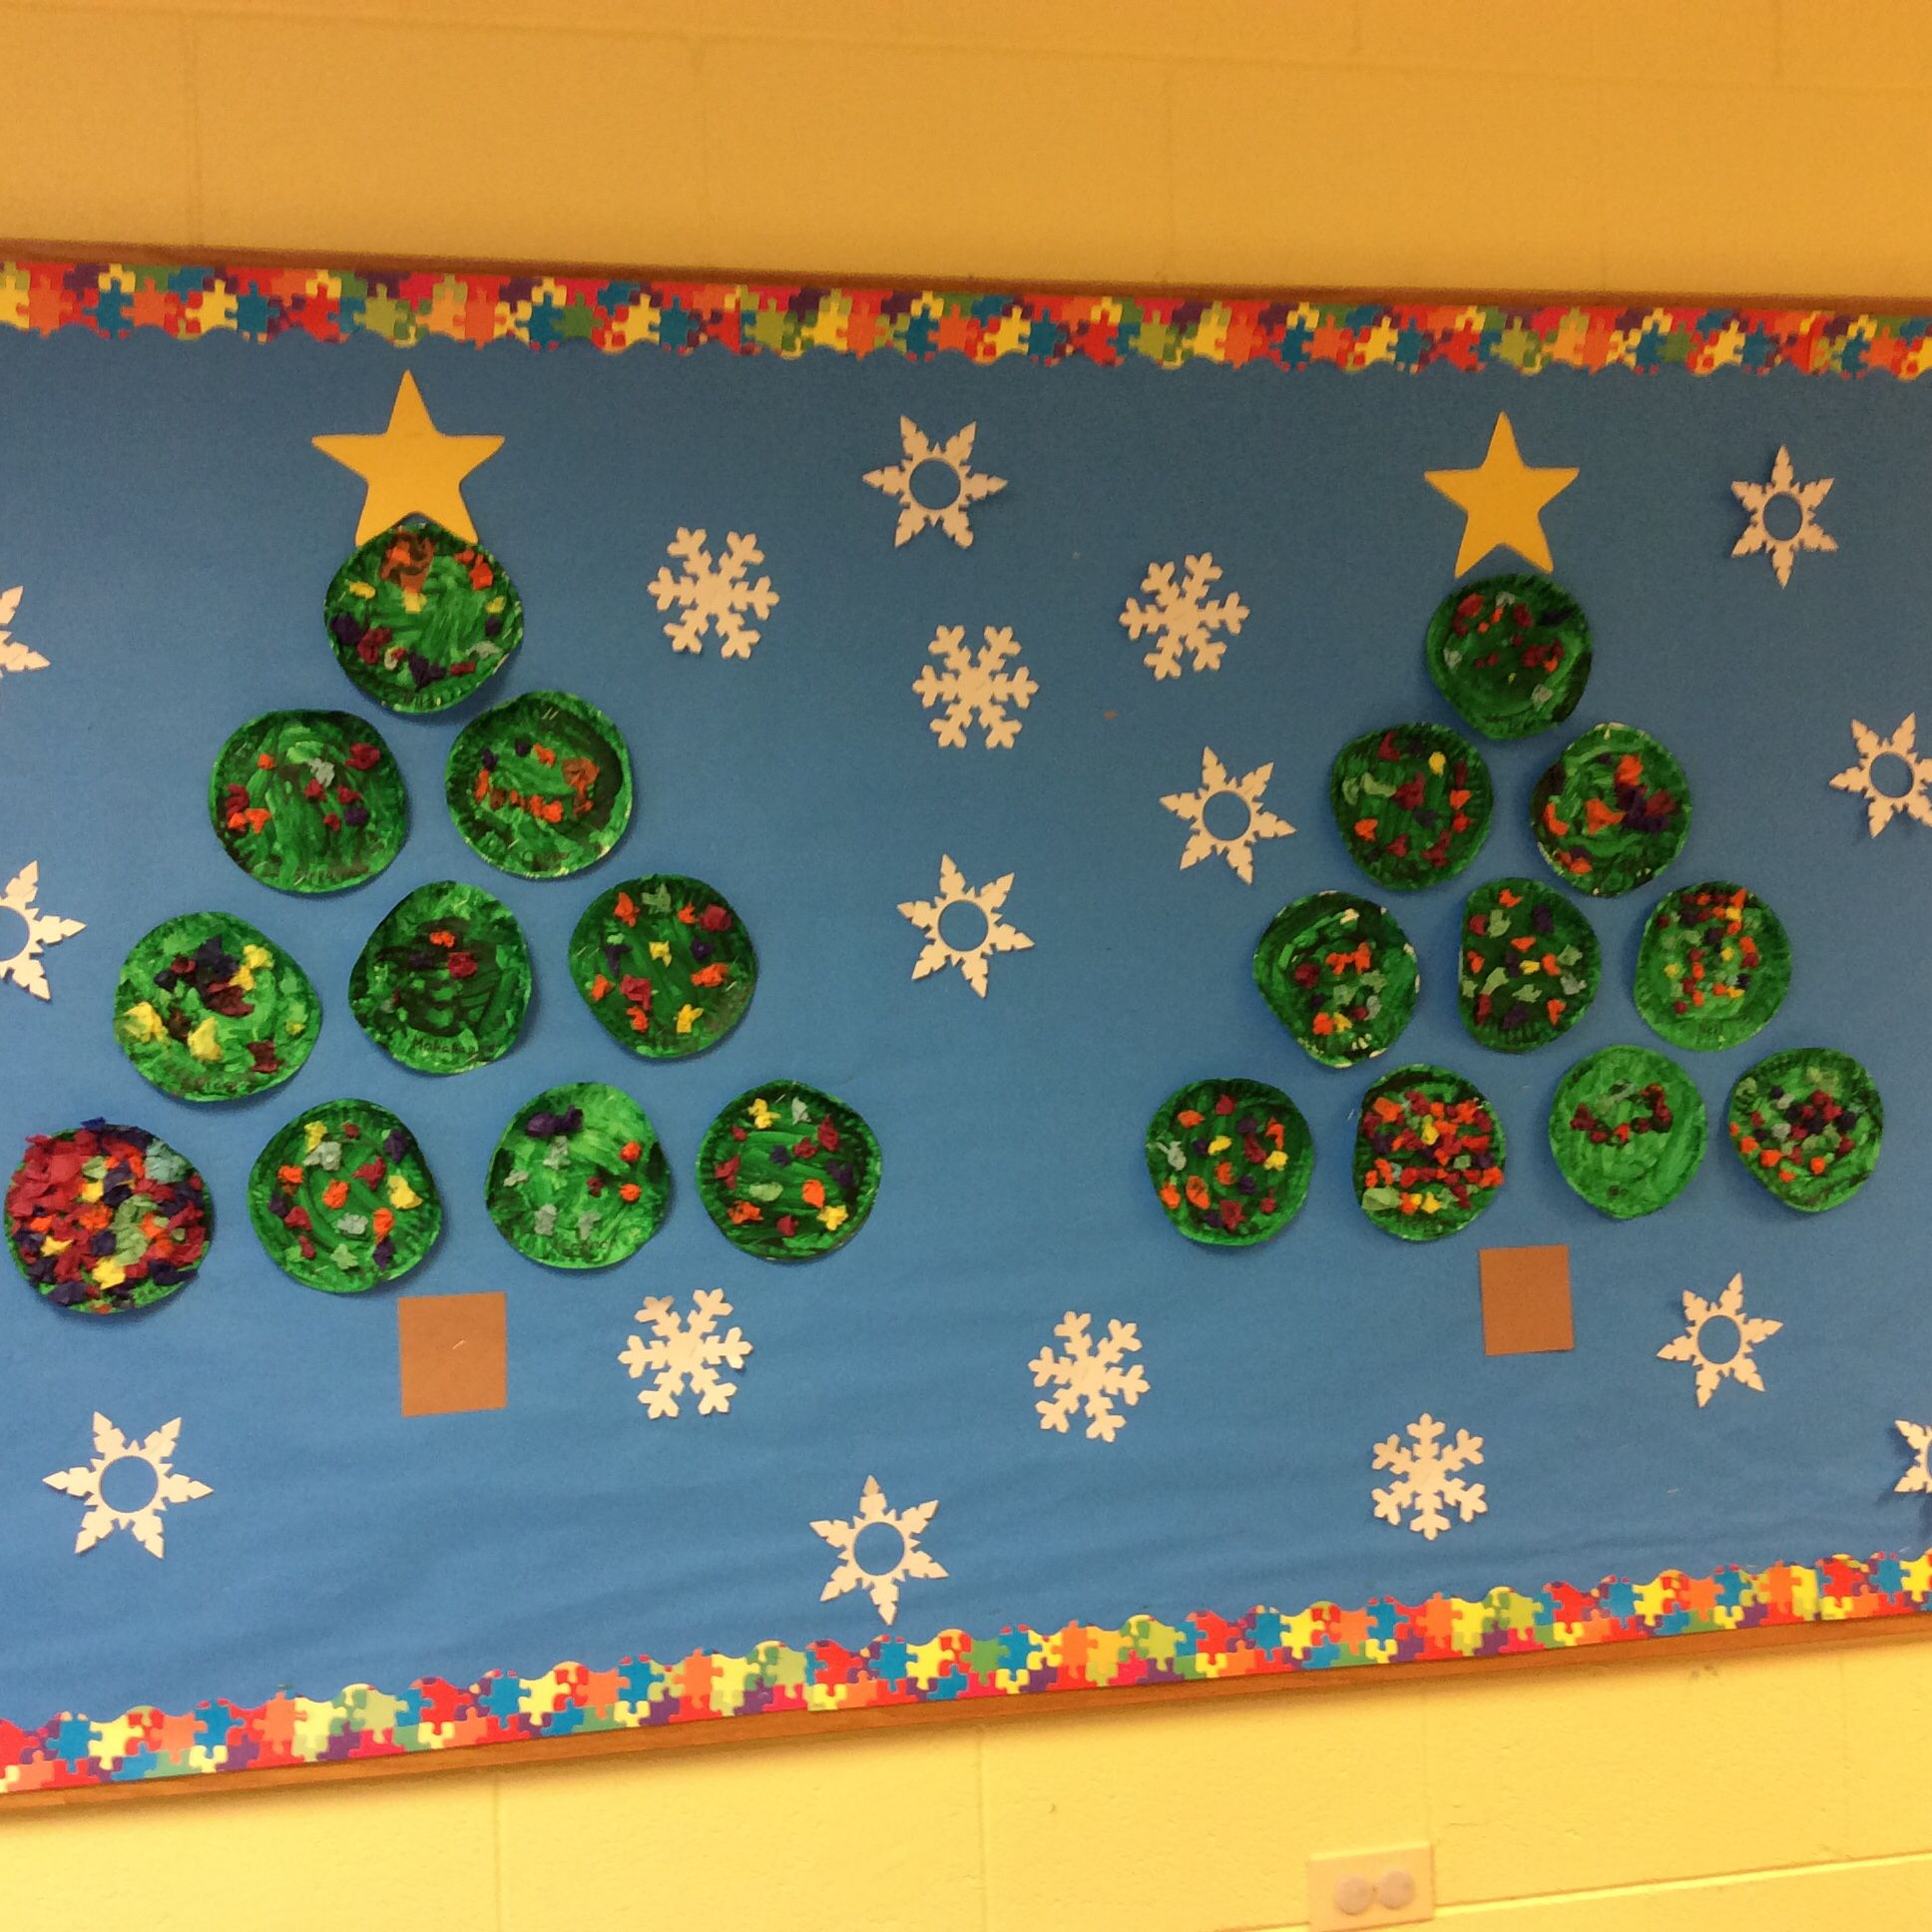 Christmas Tree Bulletin Board The Children Paint Small Paper Plates Green And Scrunch Up Pieces Of T Painting For Kids Bulletin Board Tree Activities For Kids